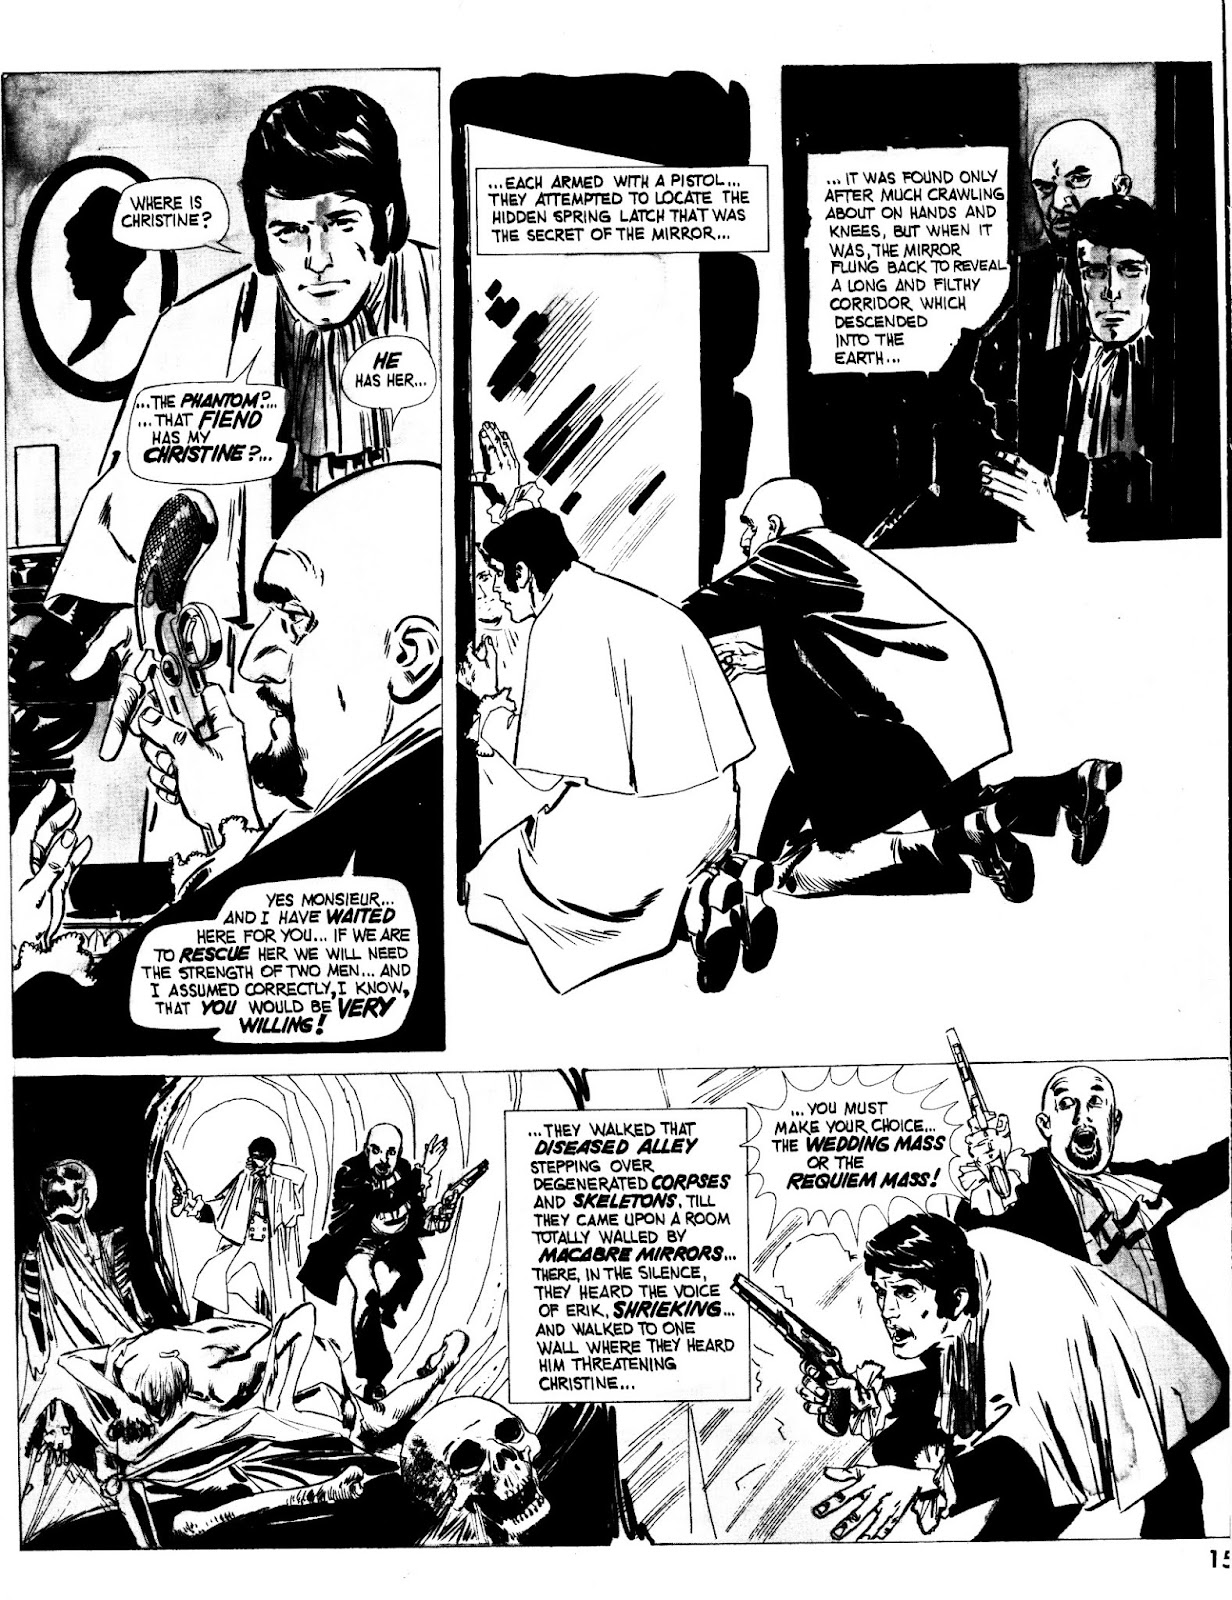 Scream (1973) issue 3 - Page 15